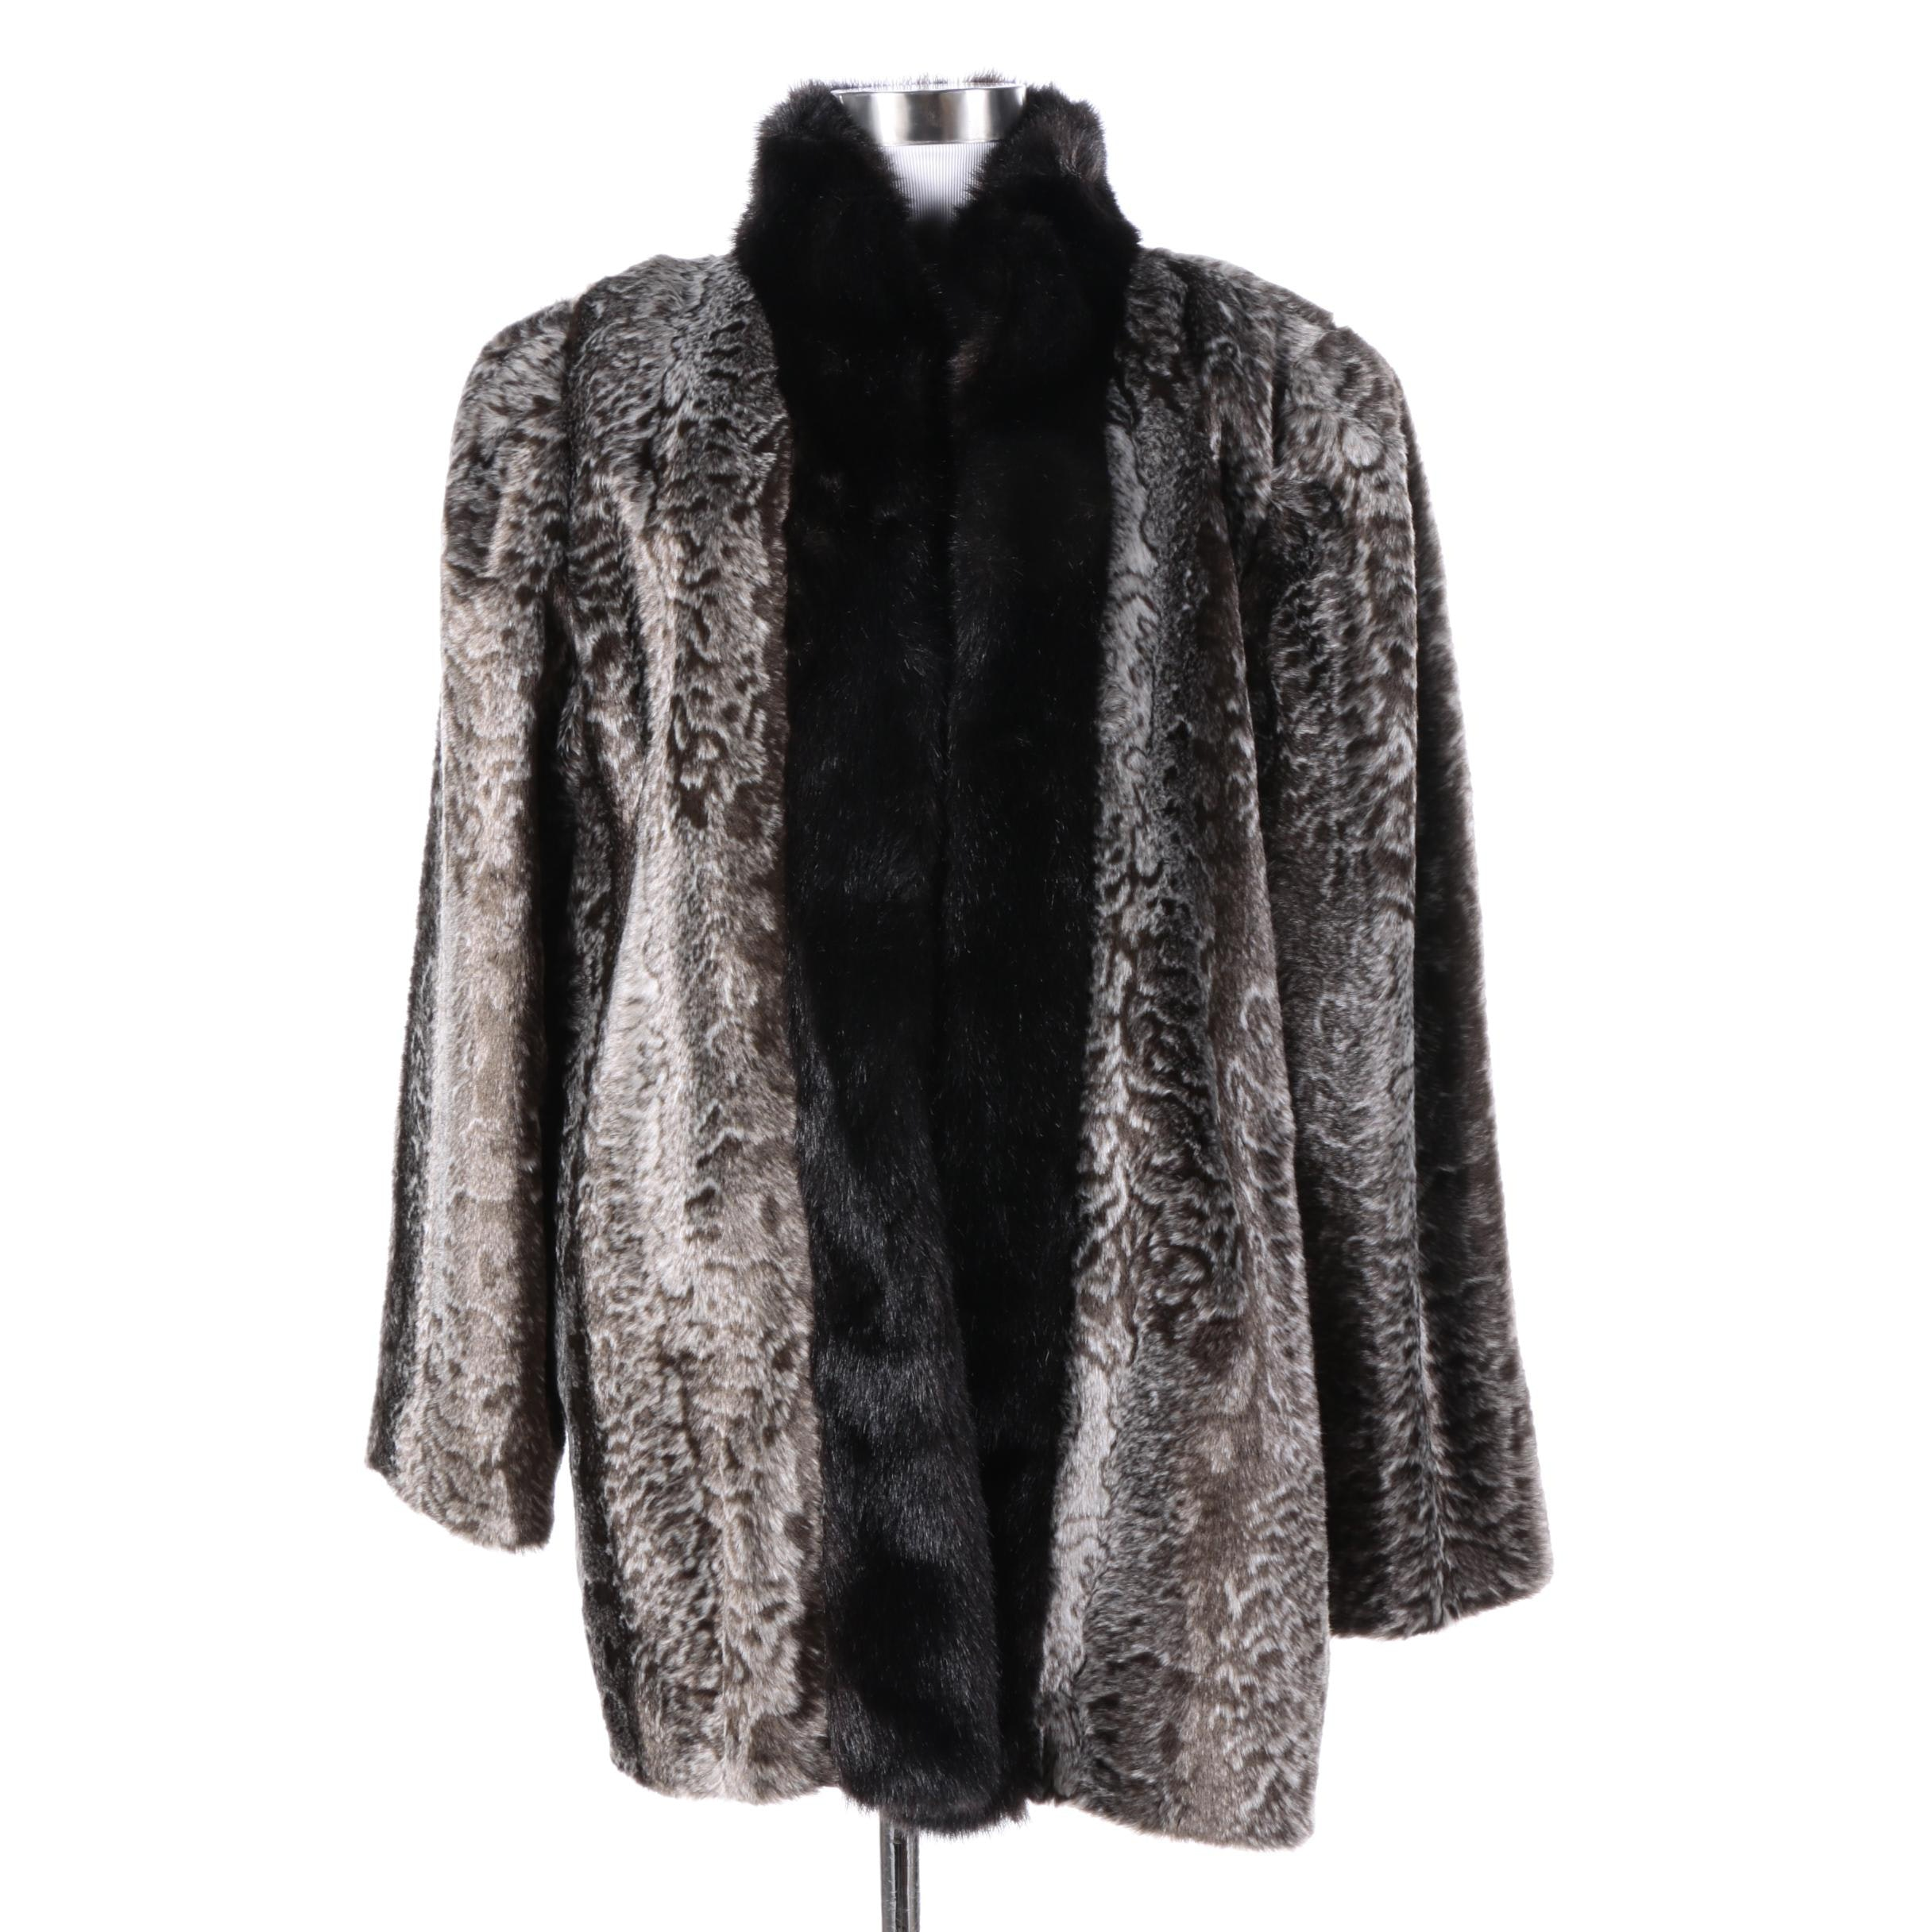 Women's Faux Fur Coat Resembling Broadtail Lamb and Mink